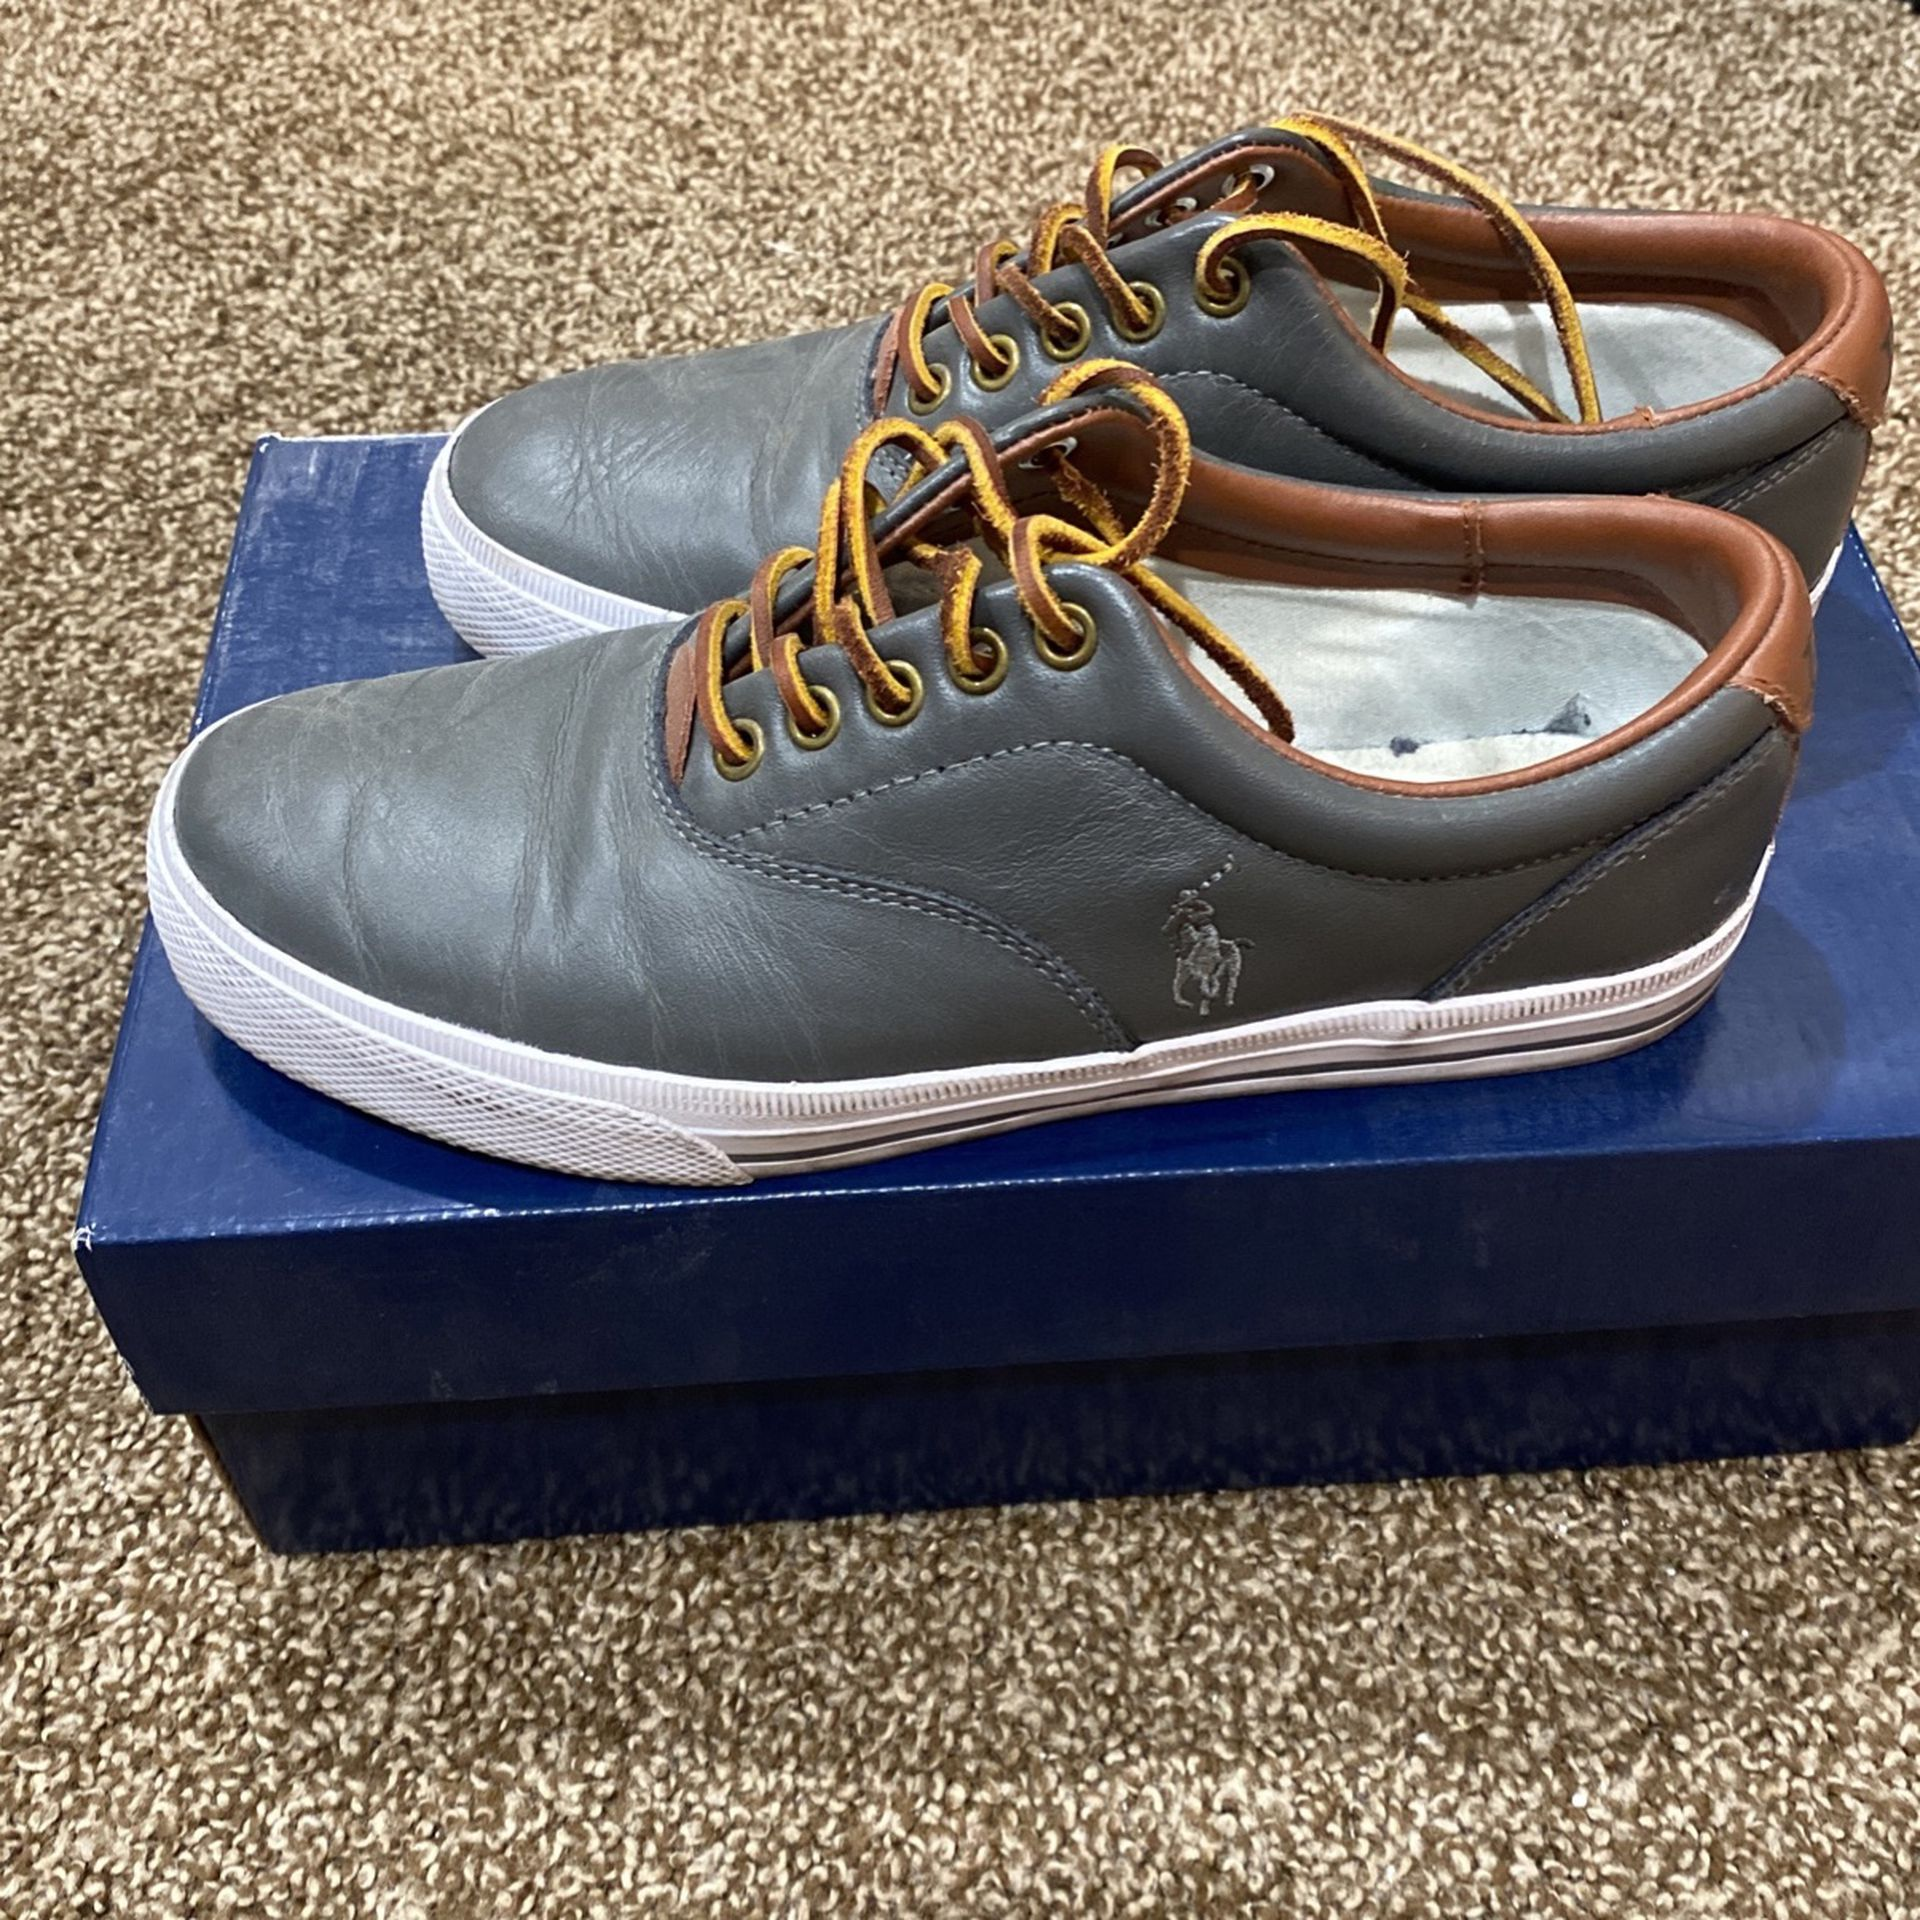 Men's Polo Shoes..size 8..yours for $30